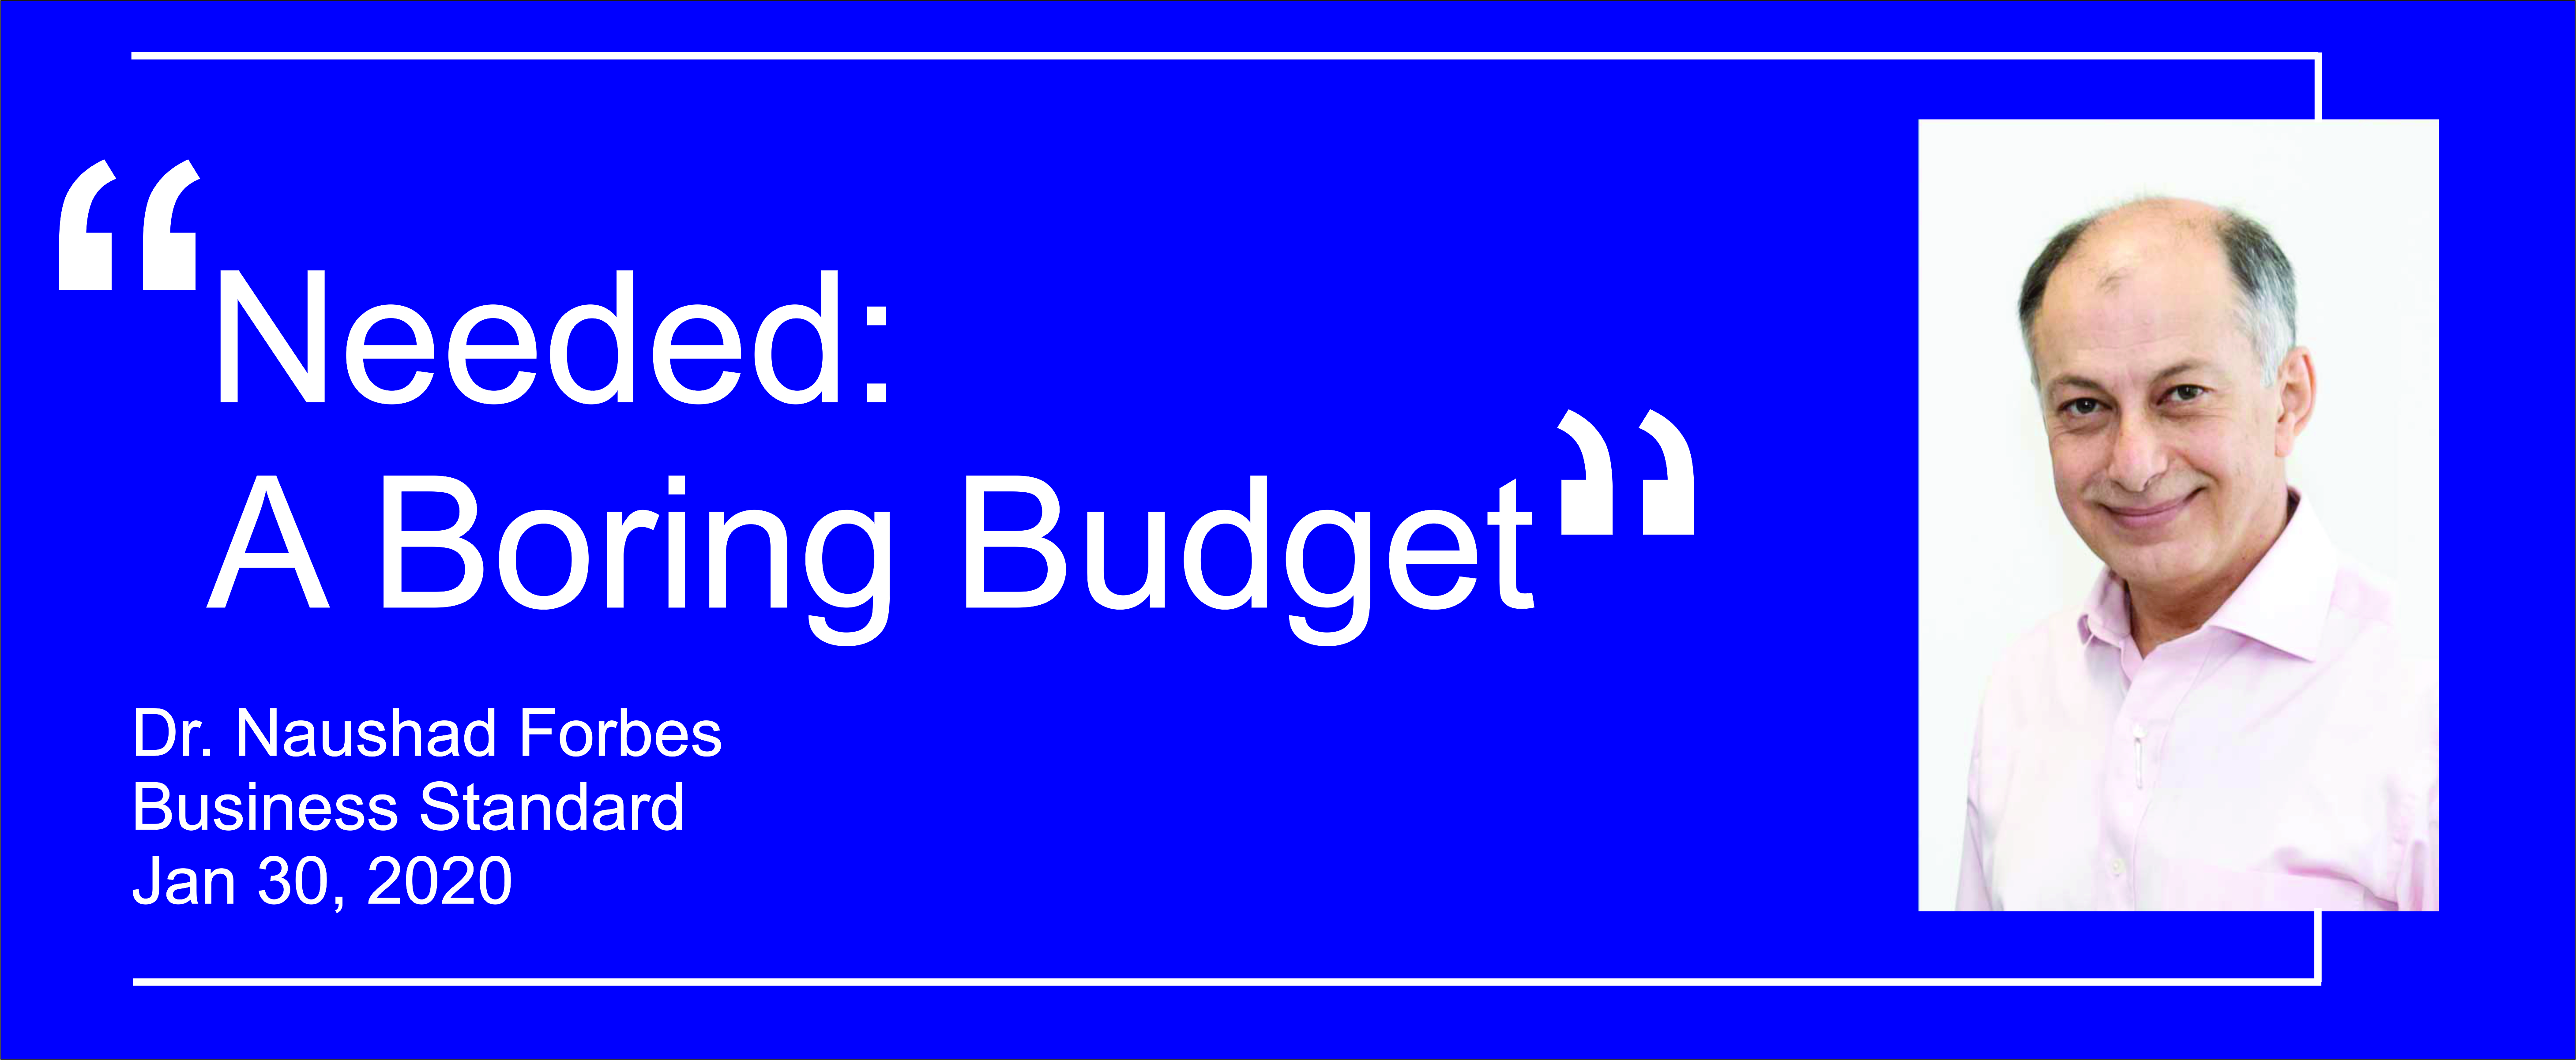 Needed: A Boring Budget